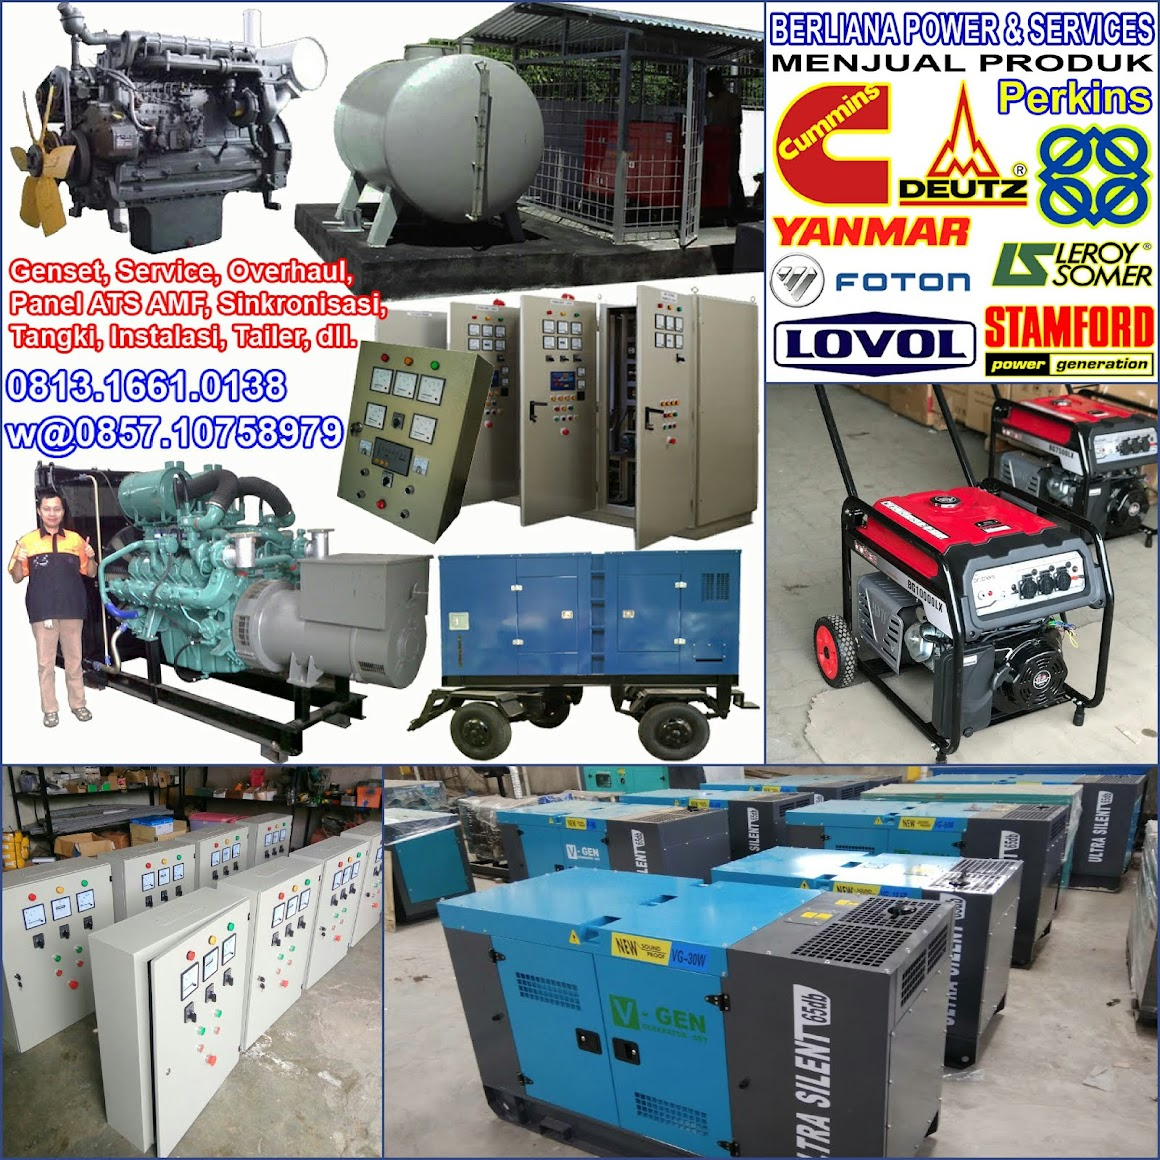 sparepartsgensetperkinscumminsblogspotcoid: 08568536742, 081316610138, Generator Copy